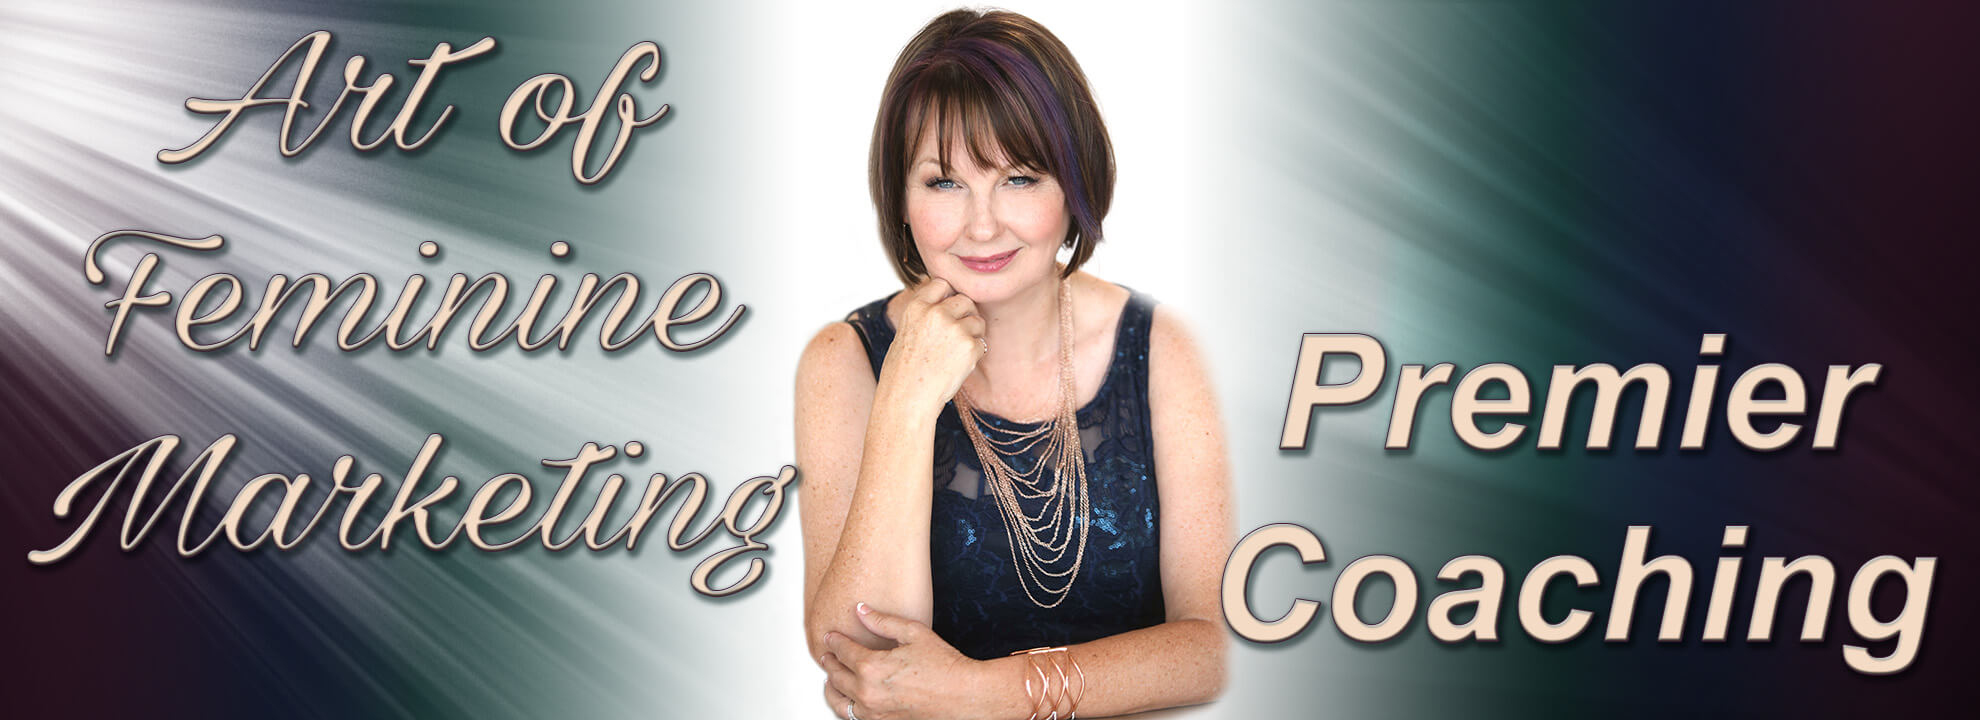 The Art of Feminine Marketing Premier Coaching